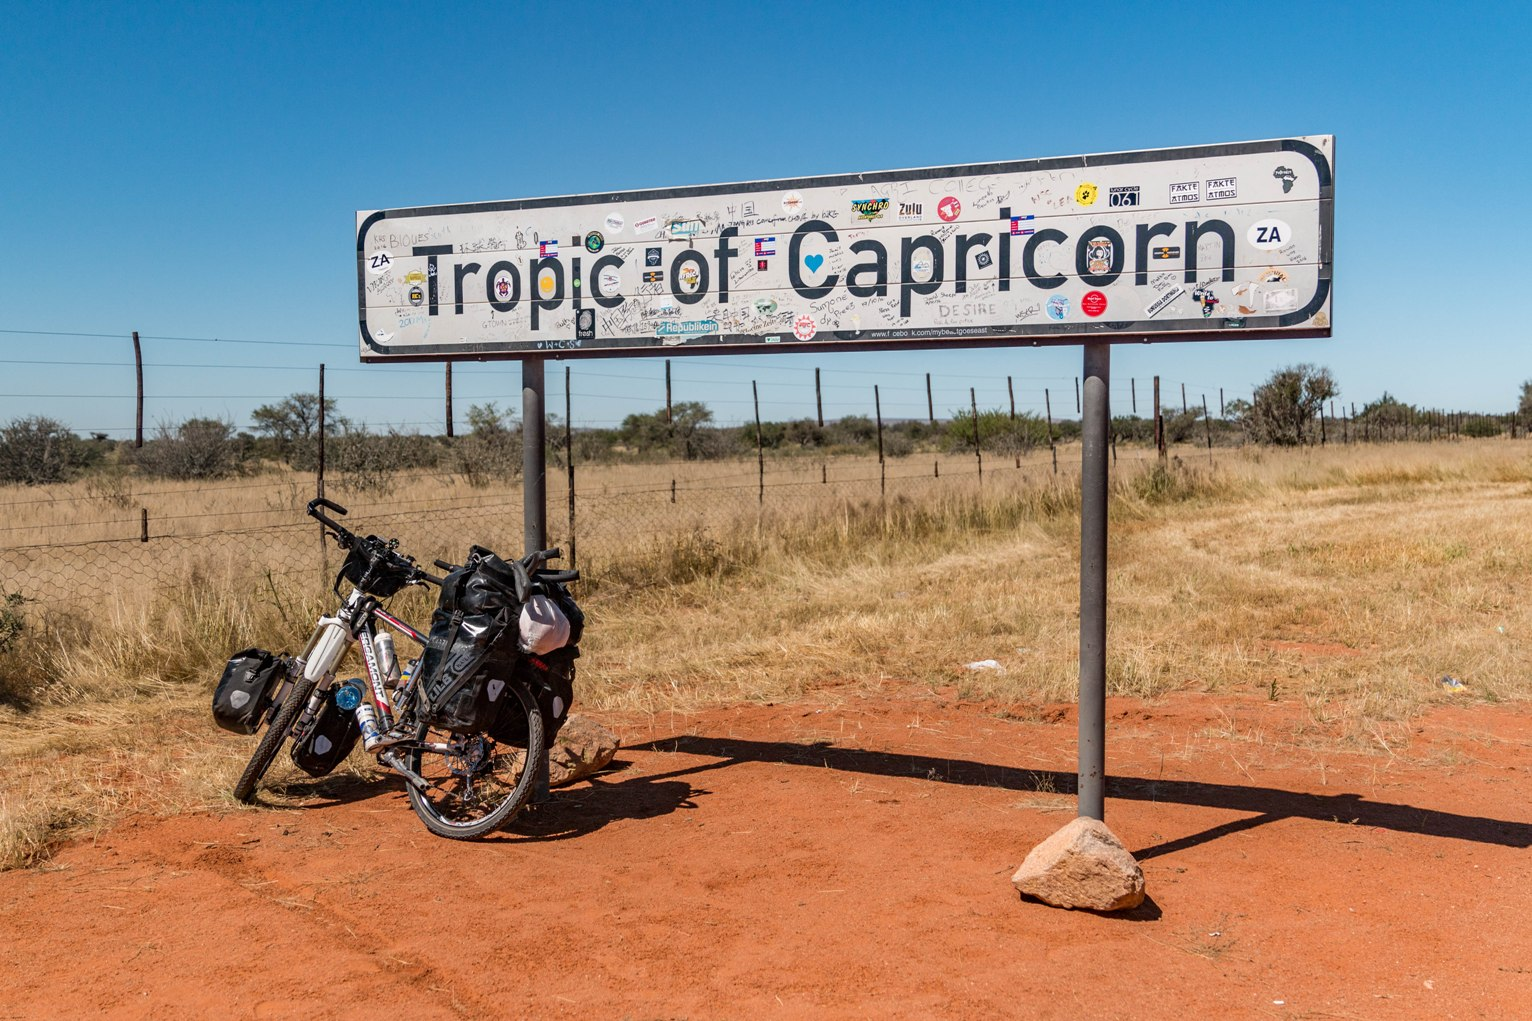 Cycle with my bicycle in Namibia near tropic of capricorn towards cape town